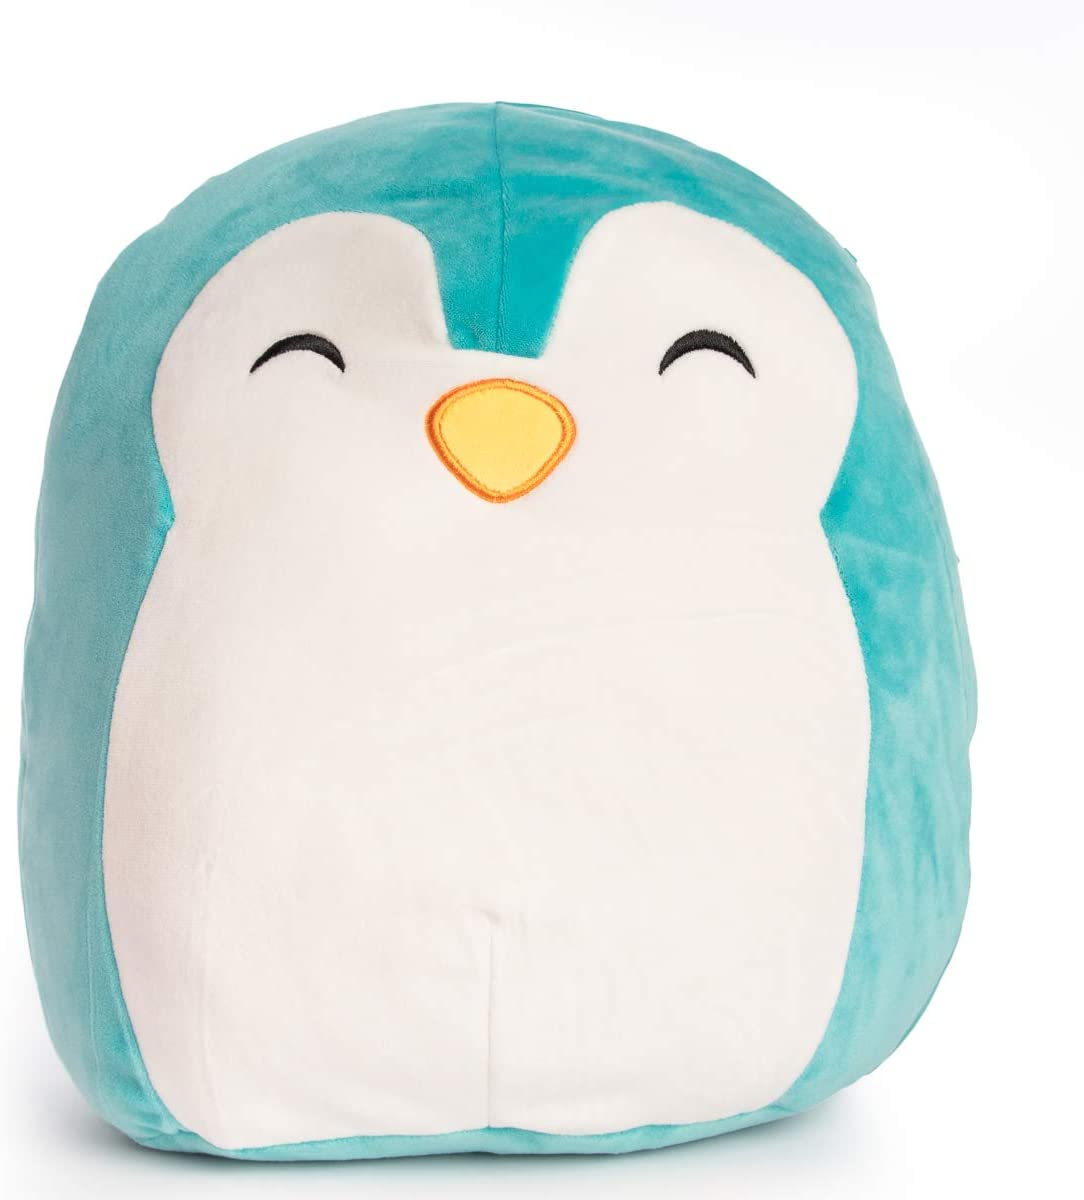 Squishmallow Original Kellytoy Teal Penguin Tanner  16 Super Soft Plush Toy Stuffed Animal Pet Pillow Gift